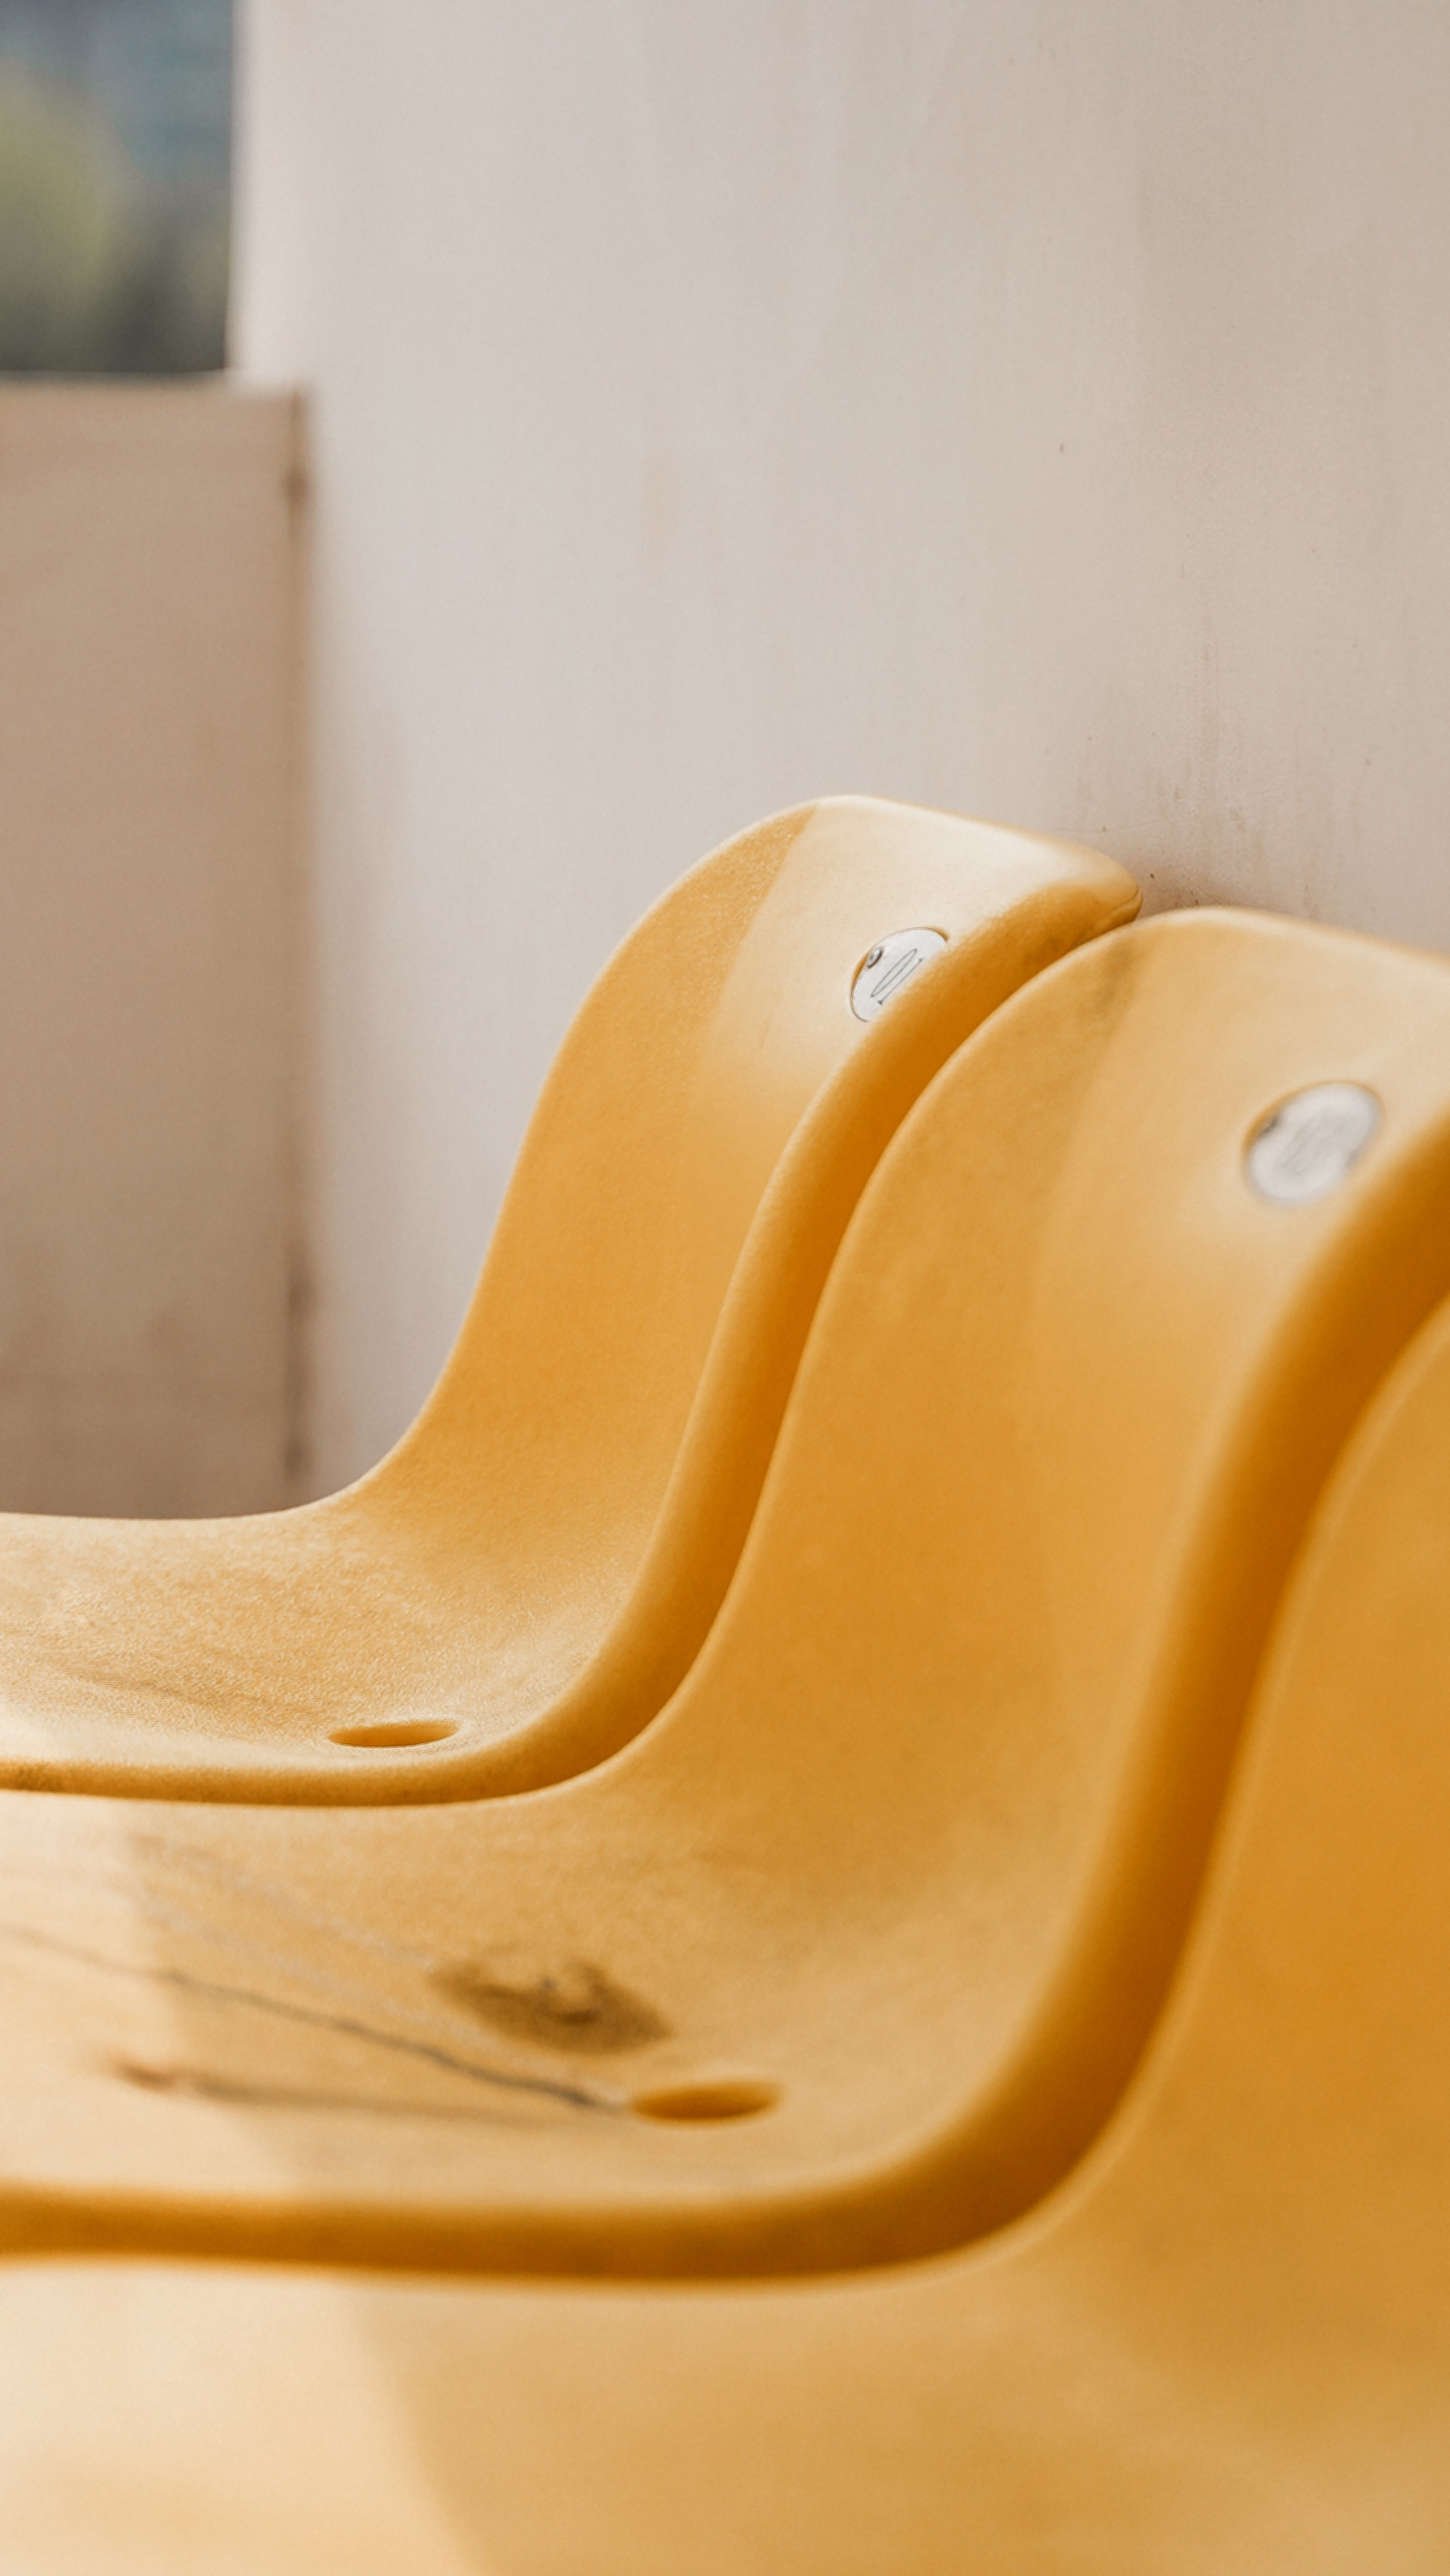 Hard yellow chair with a puddle of some liquid in it.